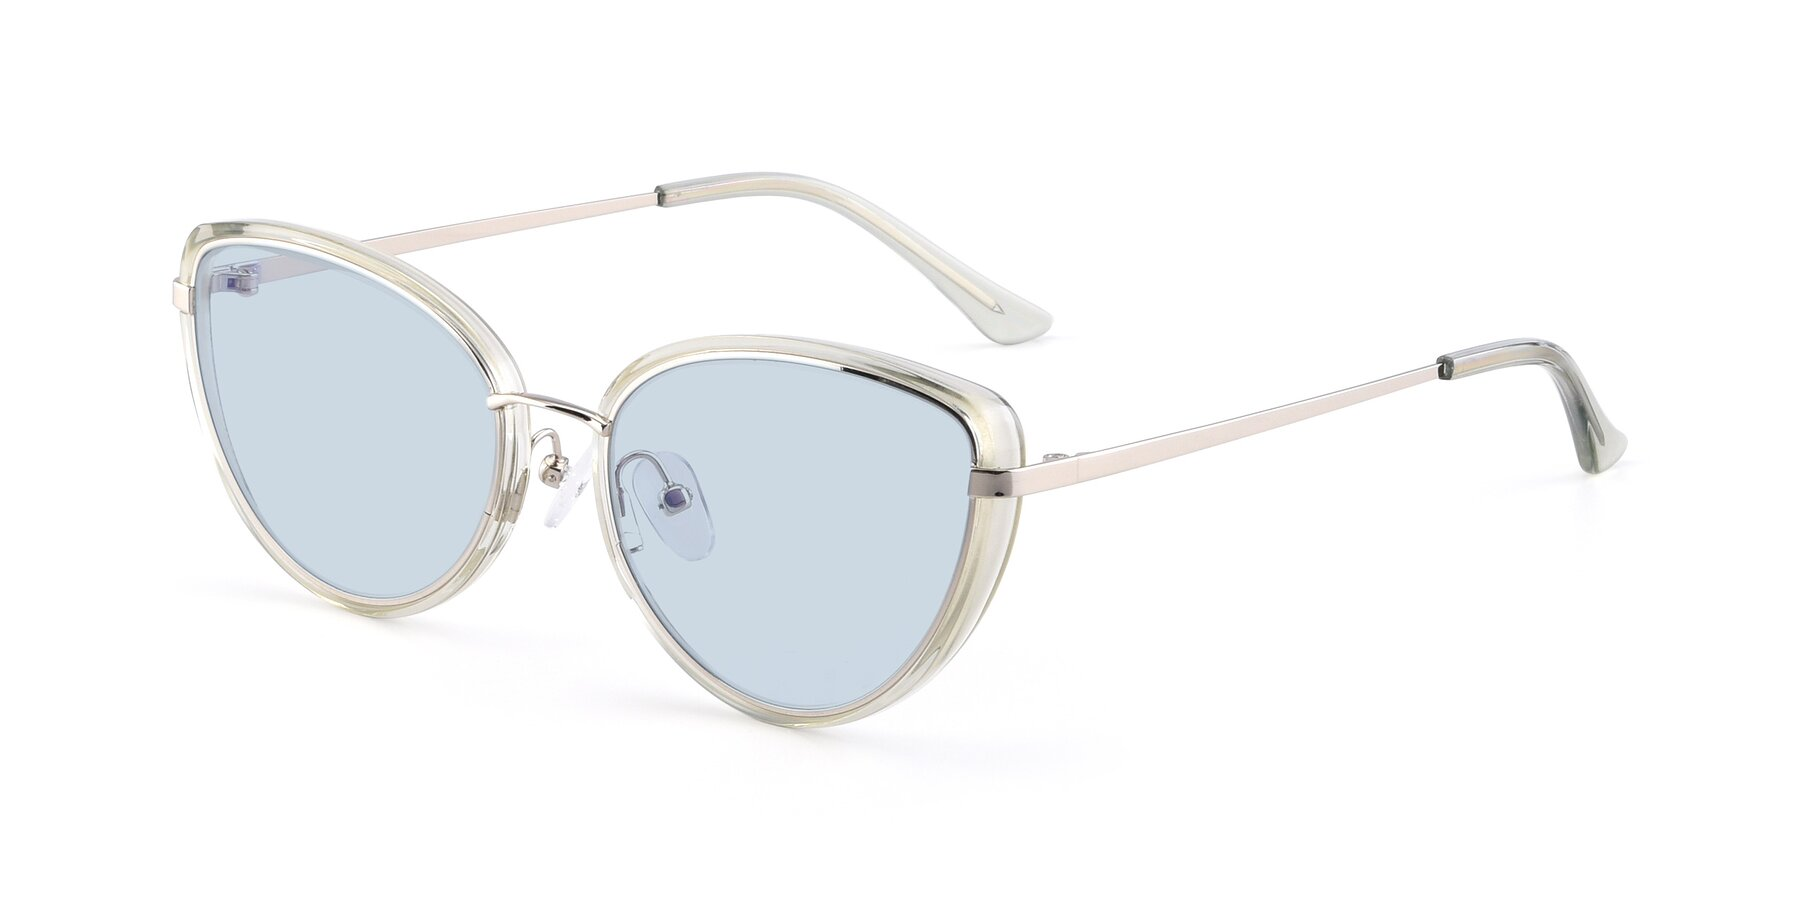 Angle of 17706 in Transparent Green-Silver with Light Blue Tinted Lenses